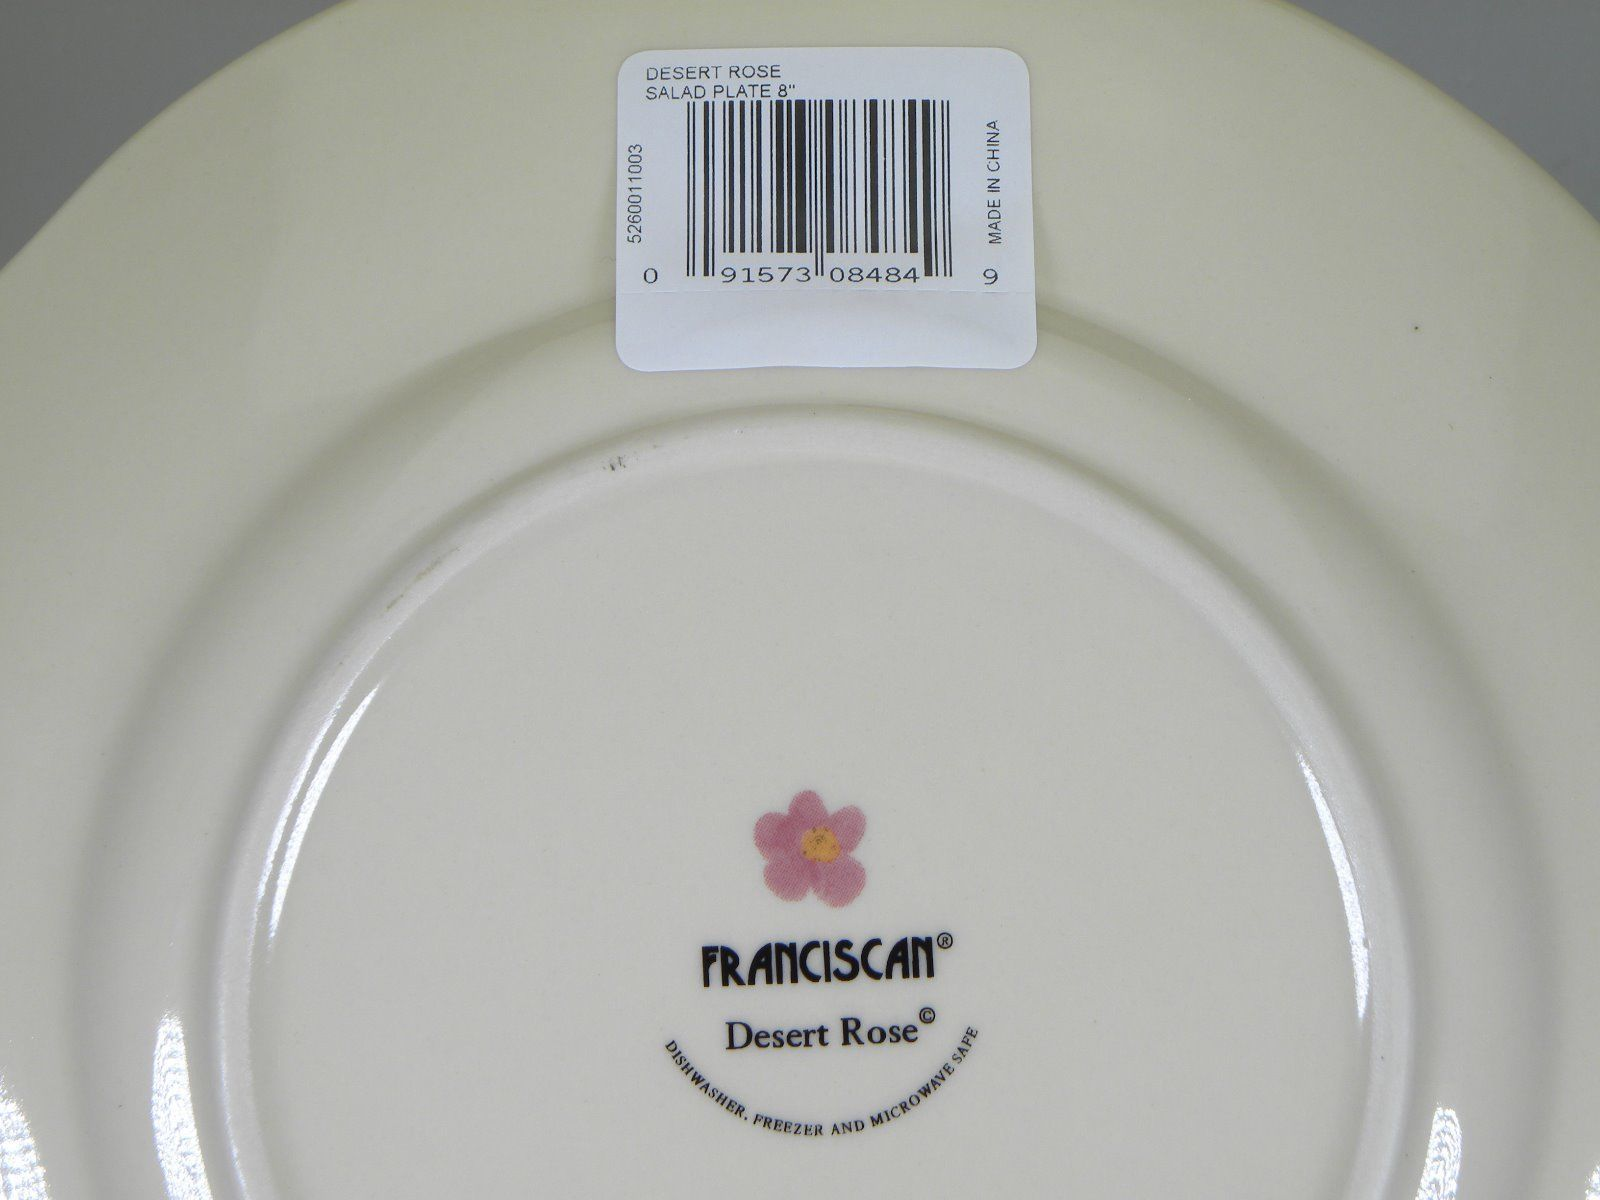 Franciscan Desert Rose Salad Plates Set of 8 BRAND NEW PRODUCTION